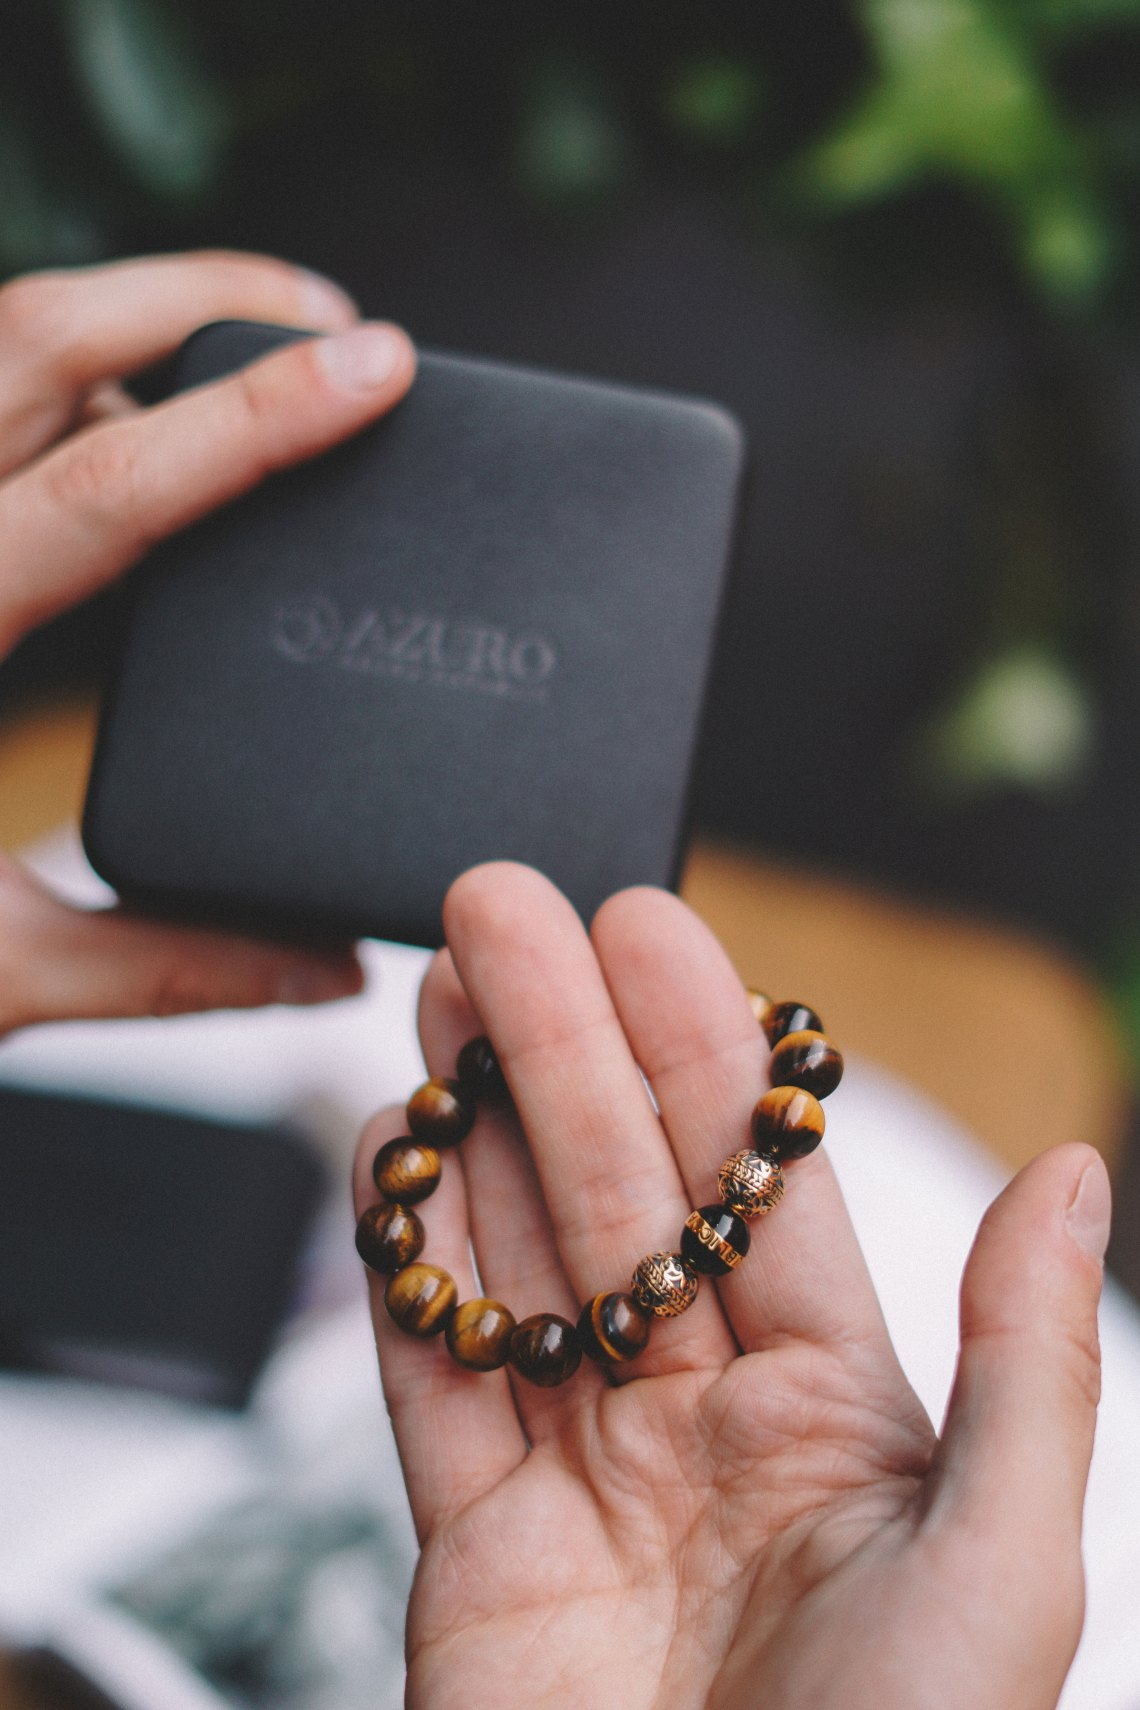 Gold Enamel Black Tiger Eye Bracelet from AZURO REPUBLIC. Shot in Marylebone, London. Blog by Skirmantas.